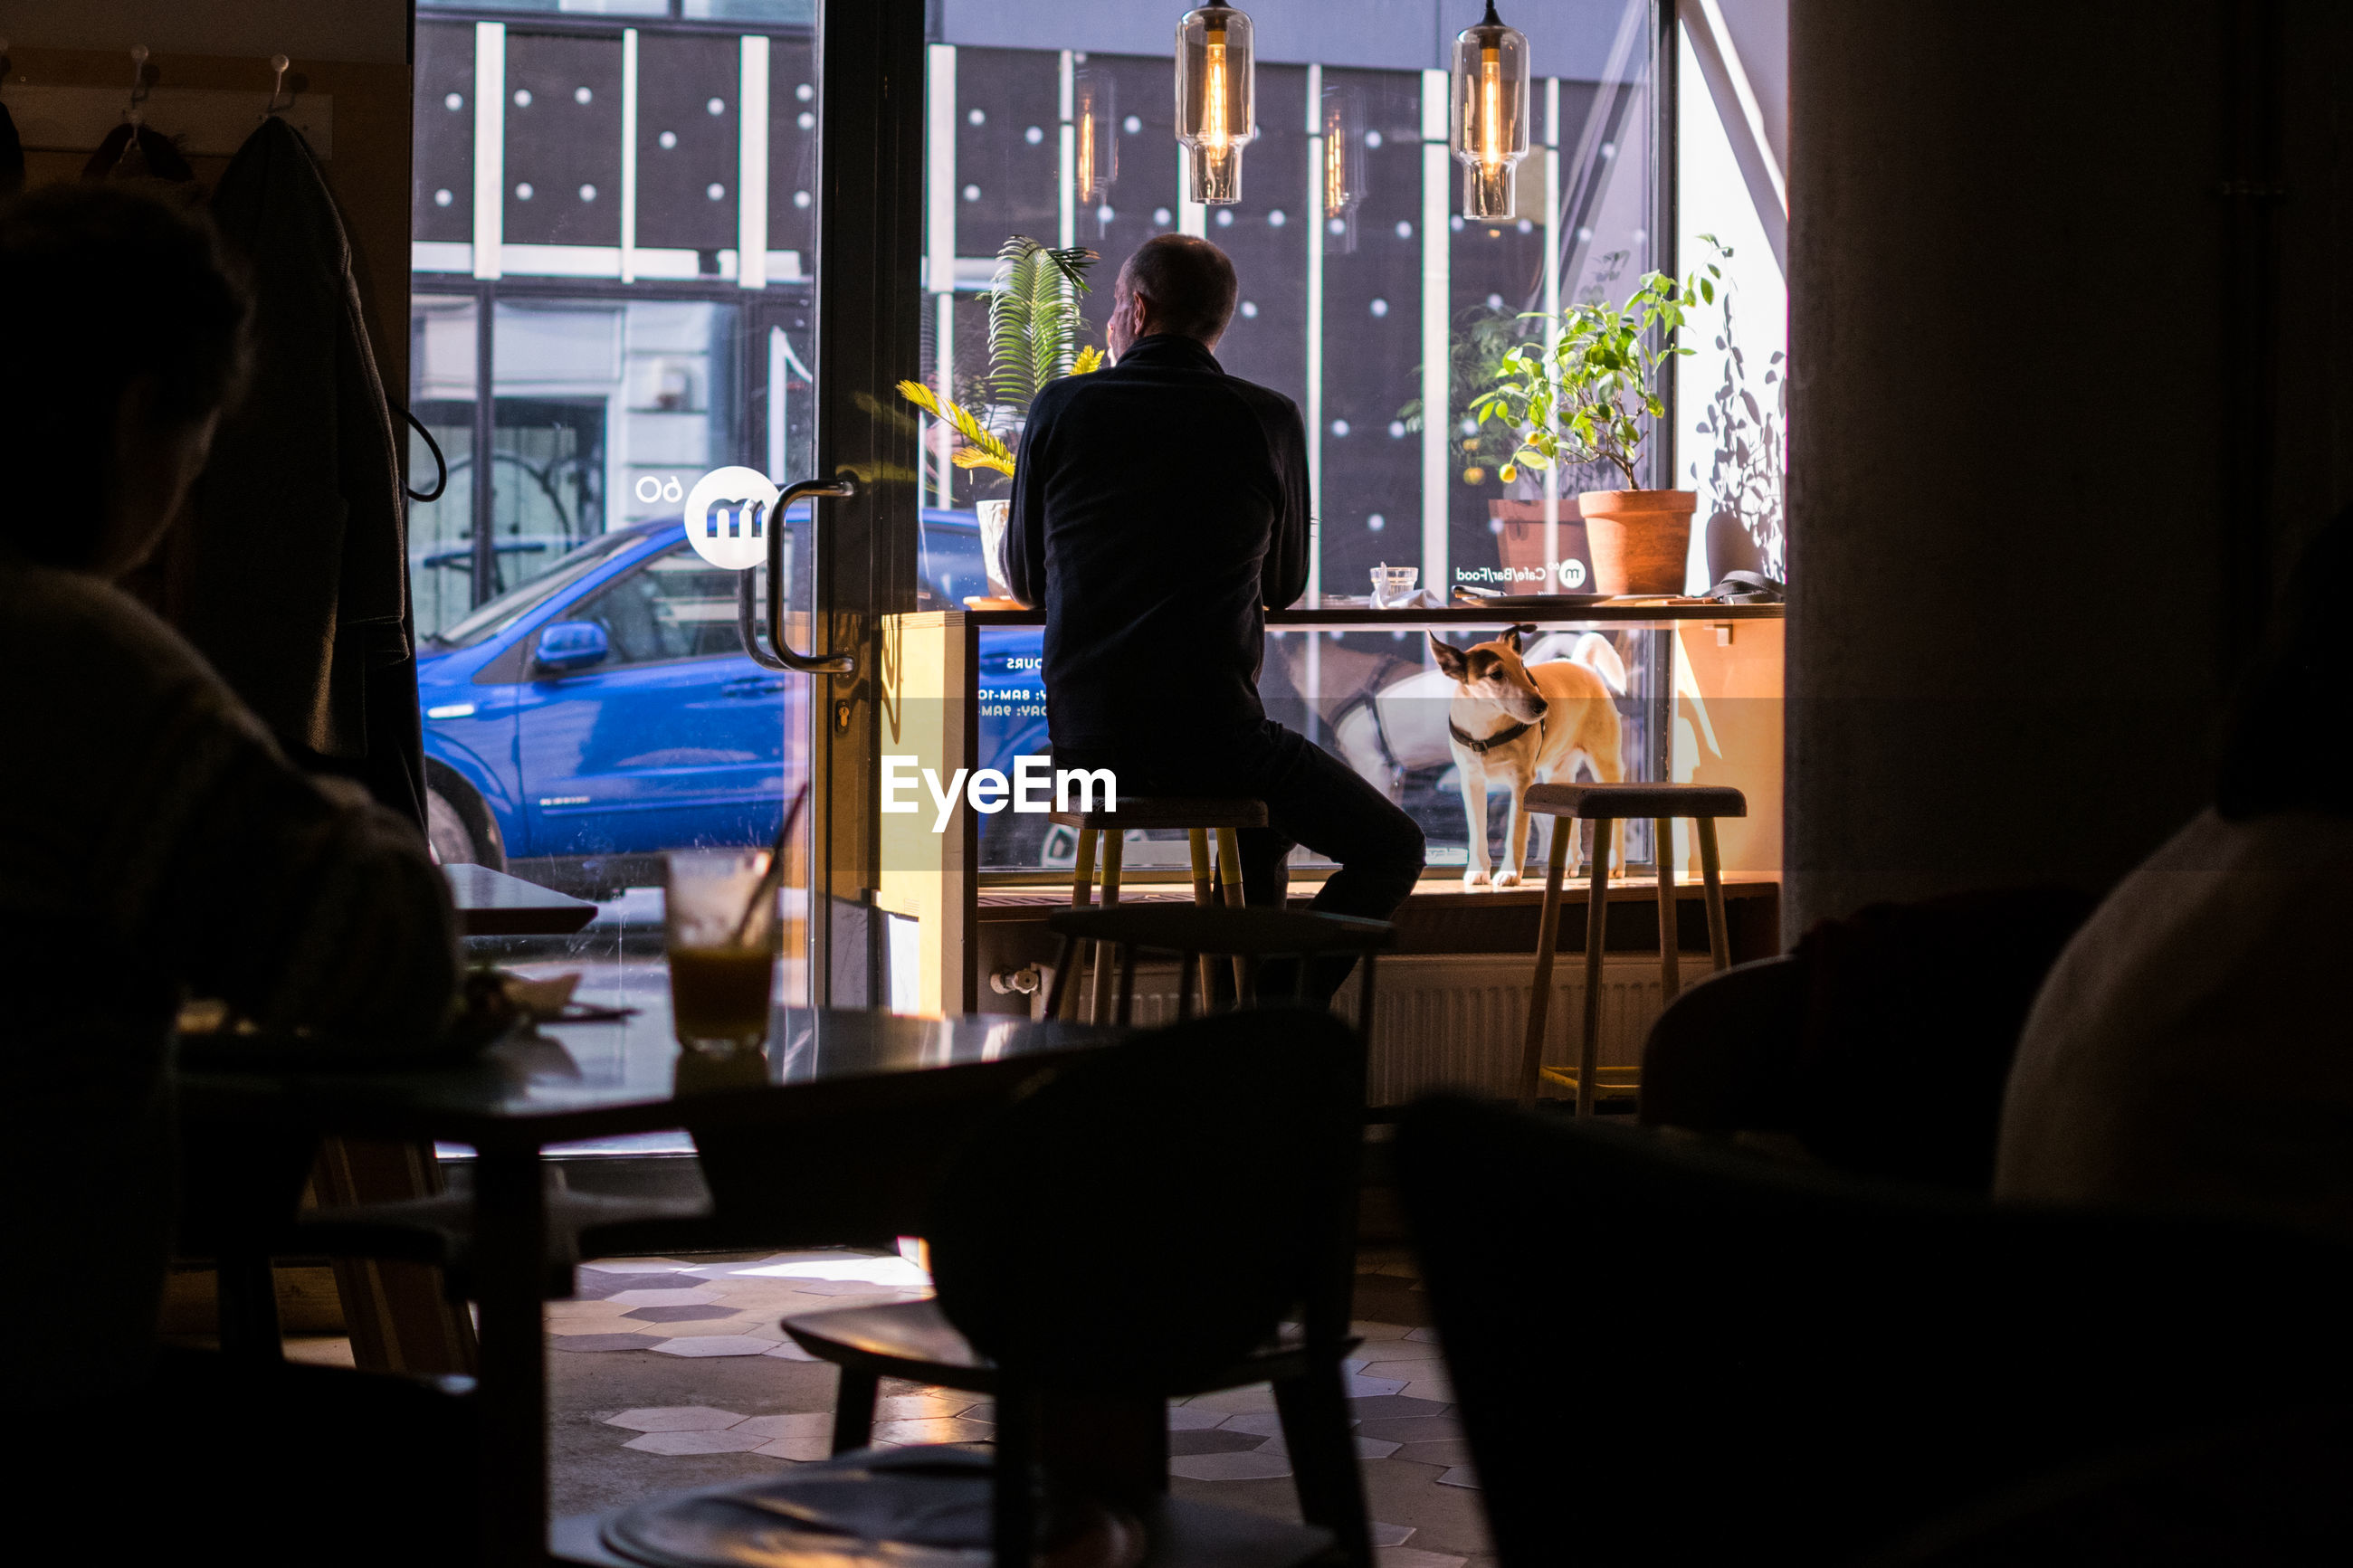 REAR VIEW OF MAN SITTING AT TABLE IN CAFE